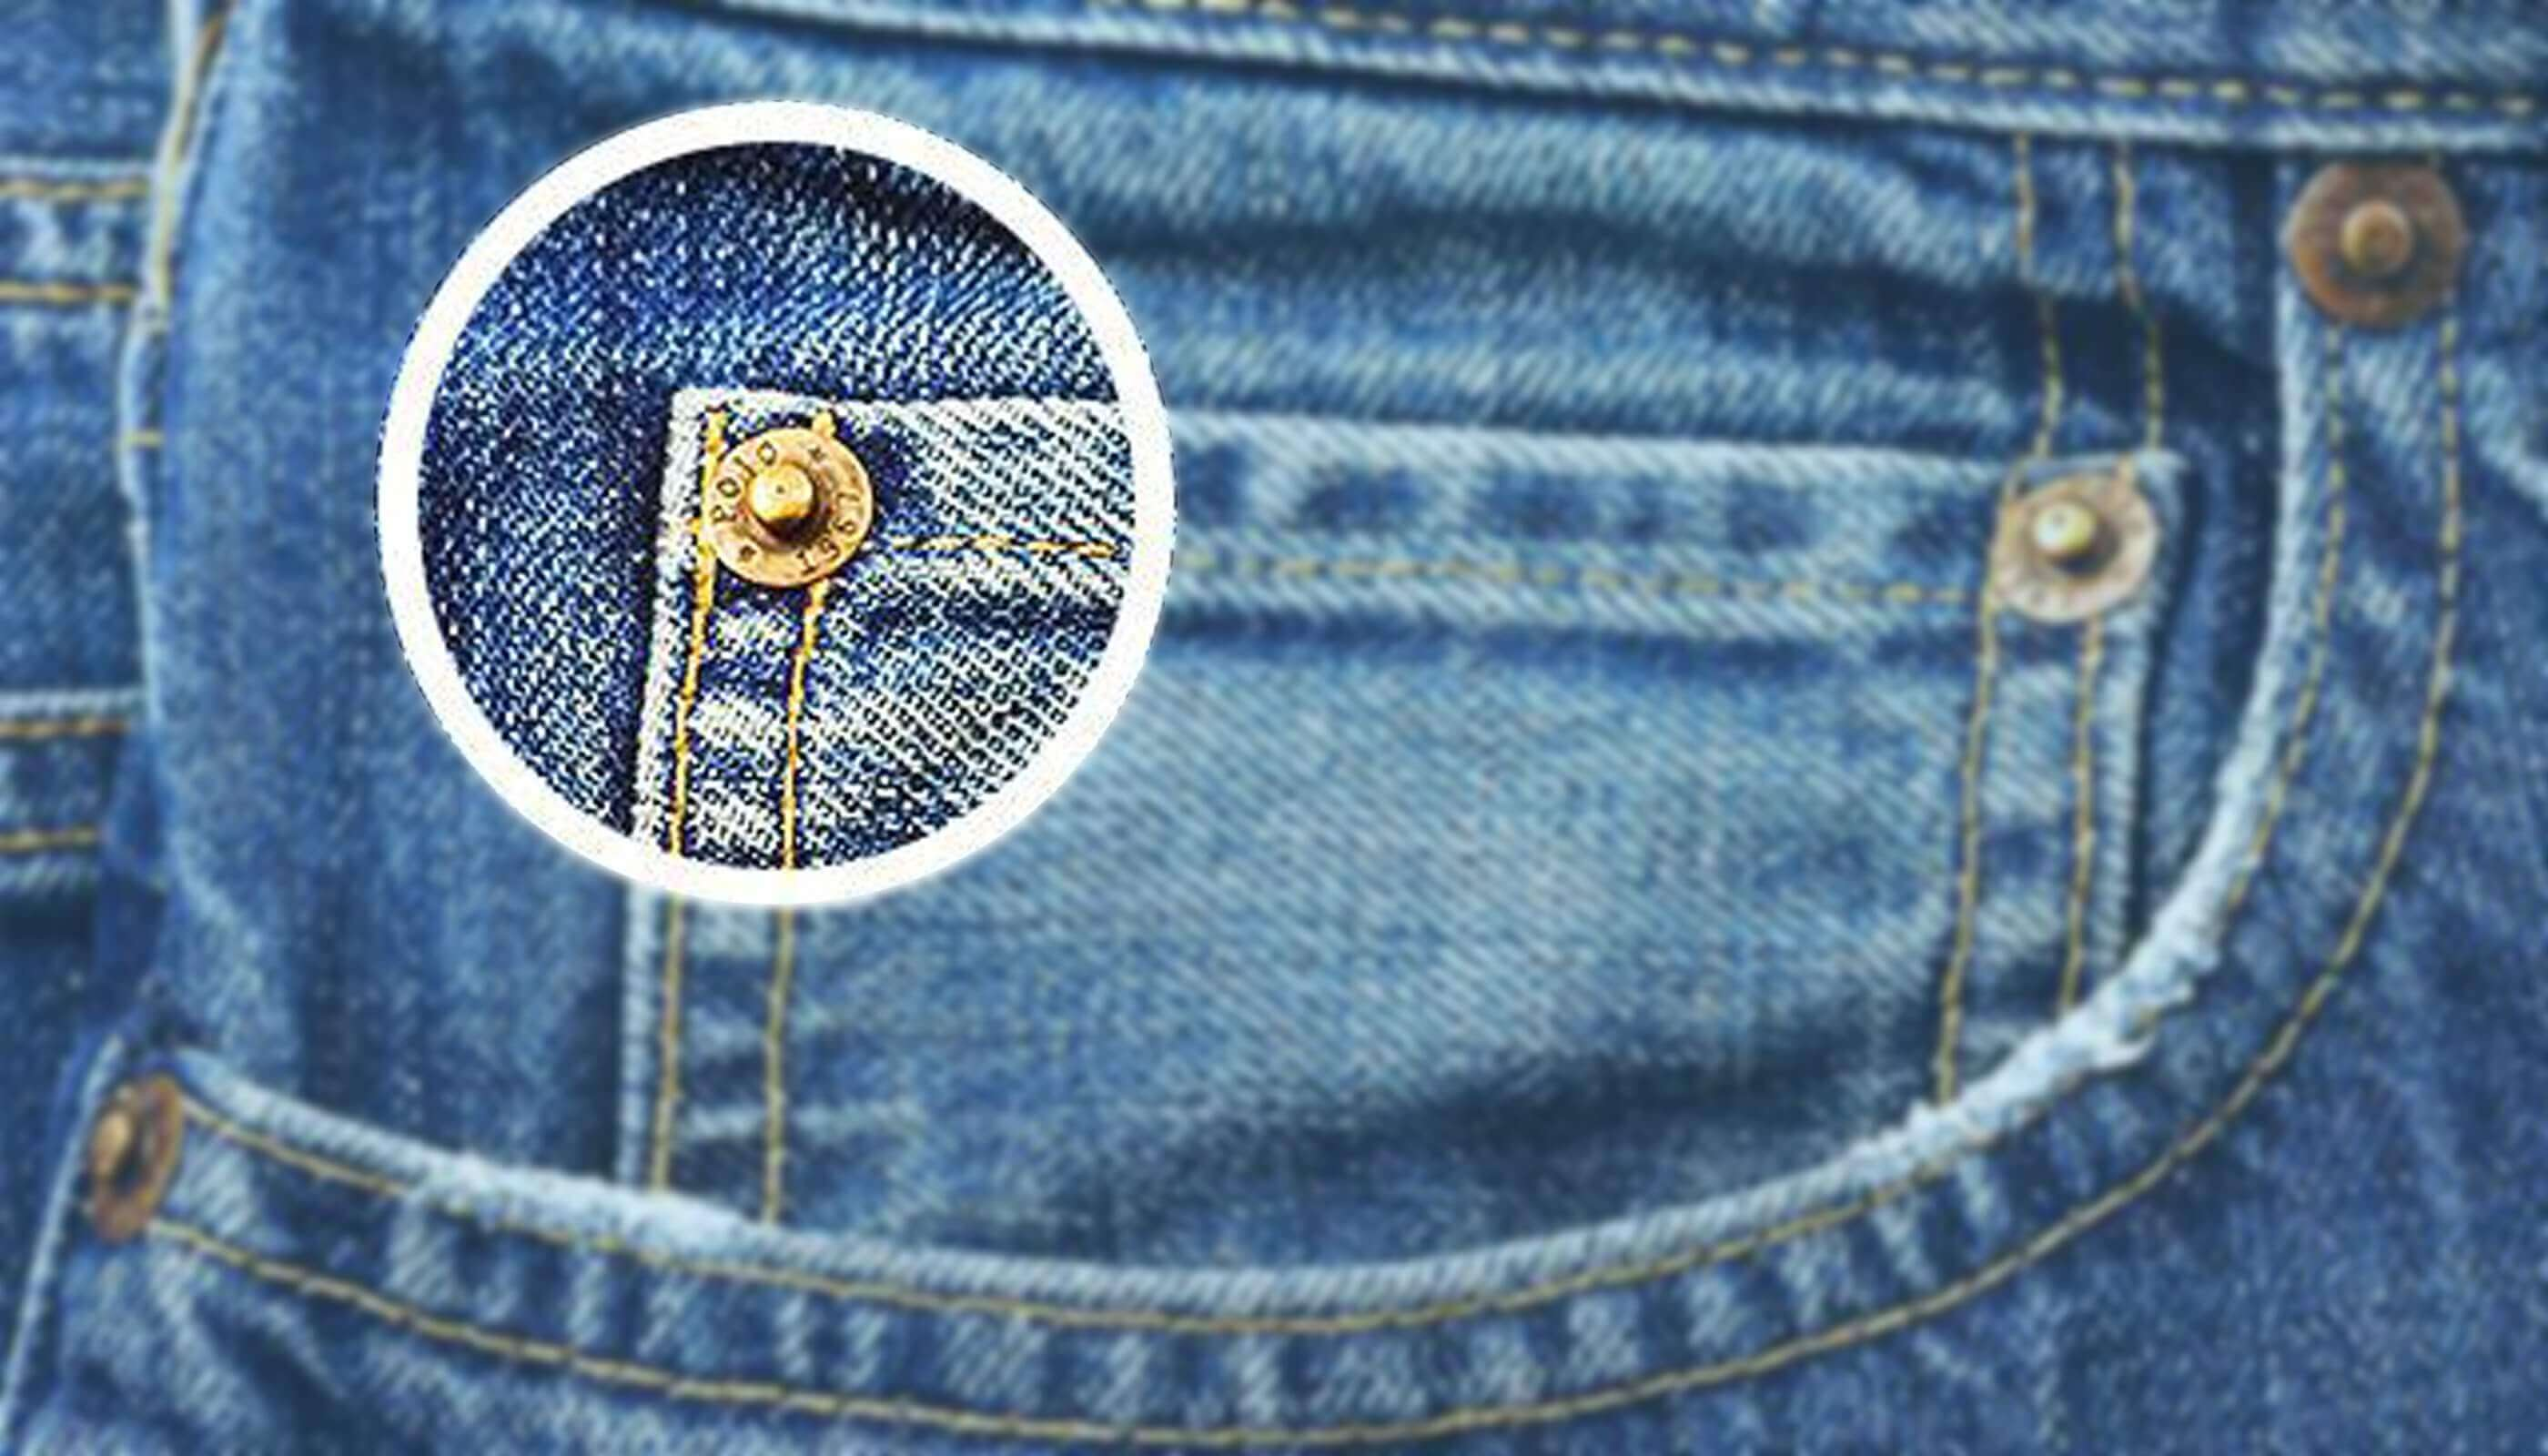 rivets jeans - Ever wondered why do jeans have those tiny pocket and buttons?